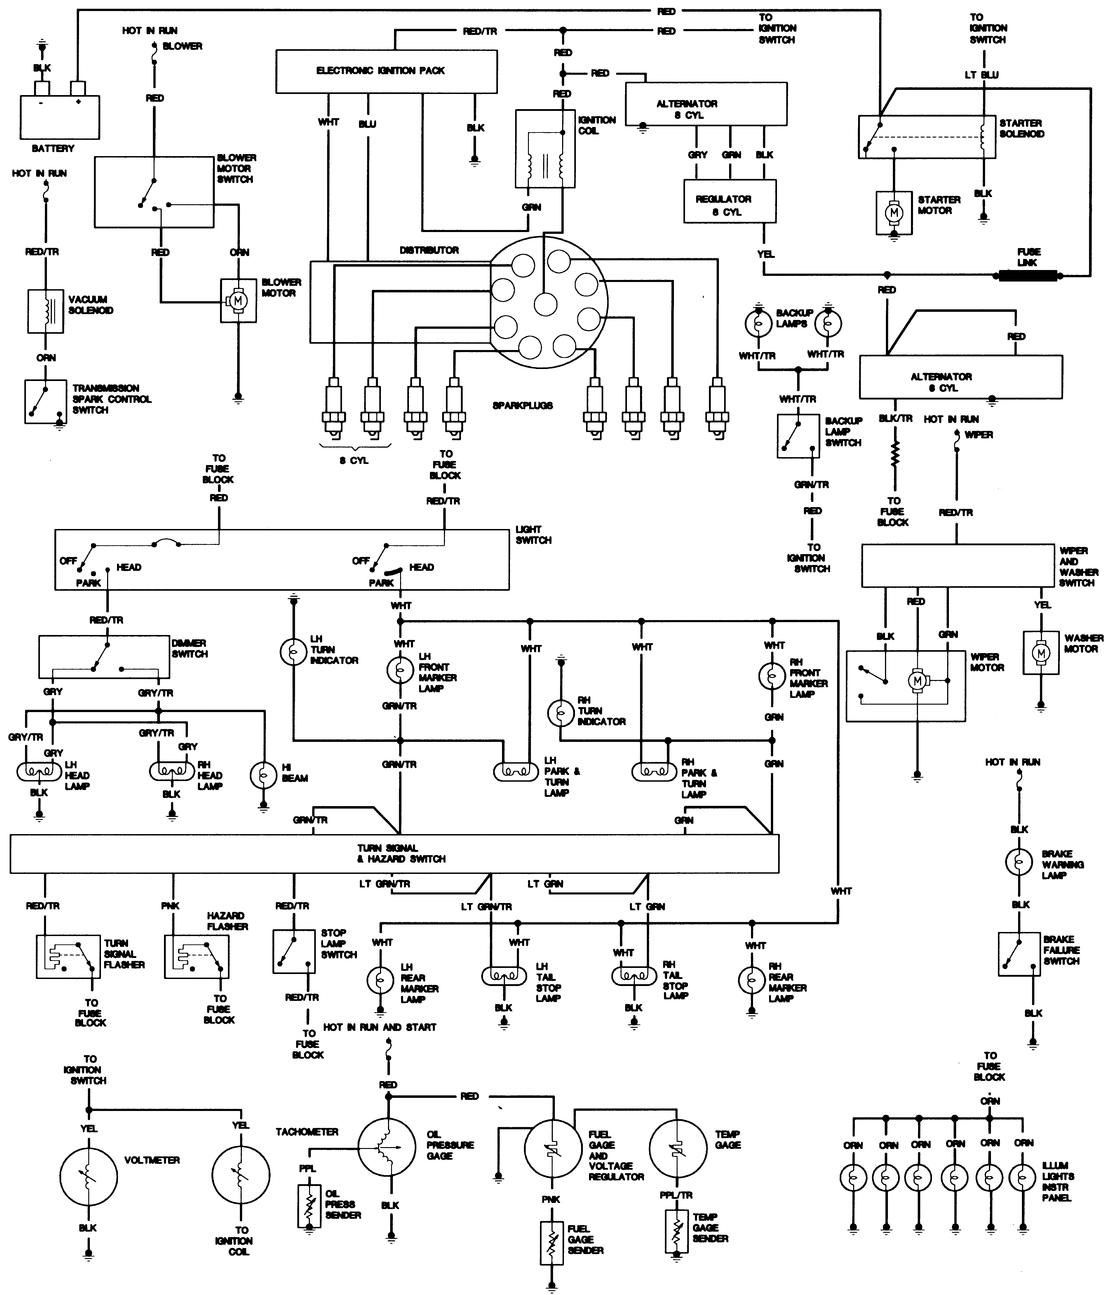 1980 cj5 wiring diagram furthermore jeep cj7 tachometer wiring Jeep Liberty Fuel Line Diagram 1980 cj5 wiring diagram furthermore jeep cj7 tachometer wiring diagram along with jeep cj5 steering column diagram along with lighted rocker switch wiring